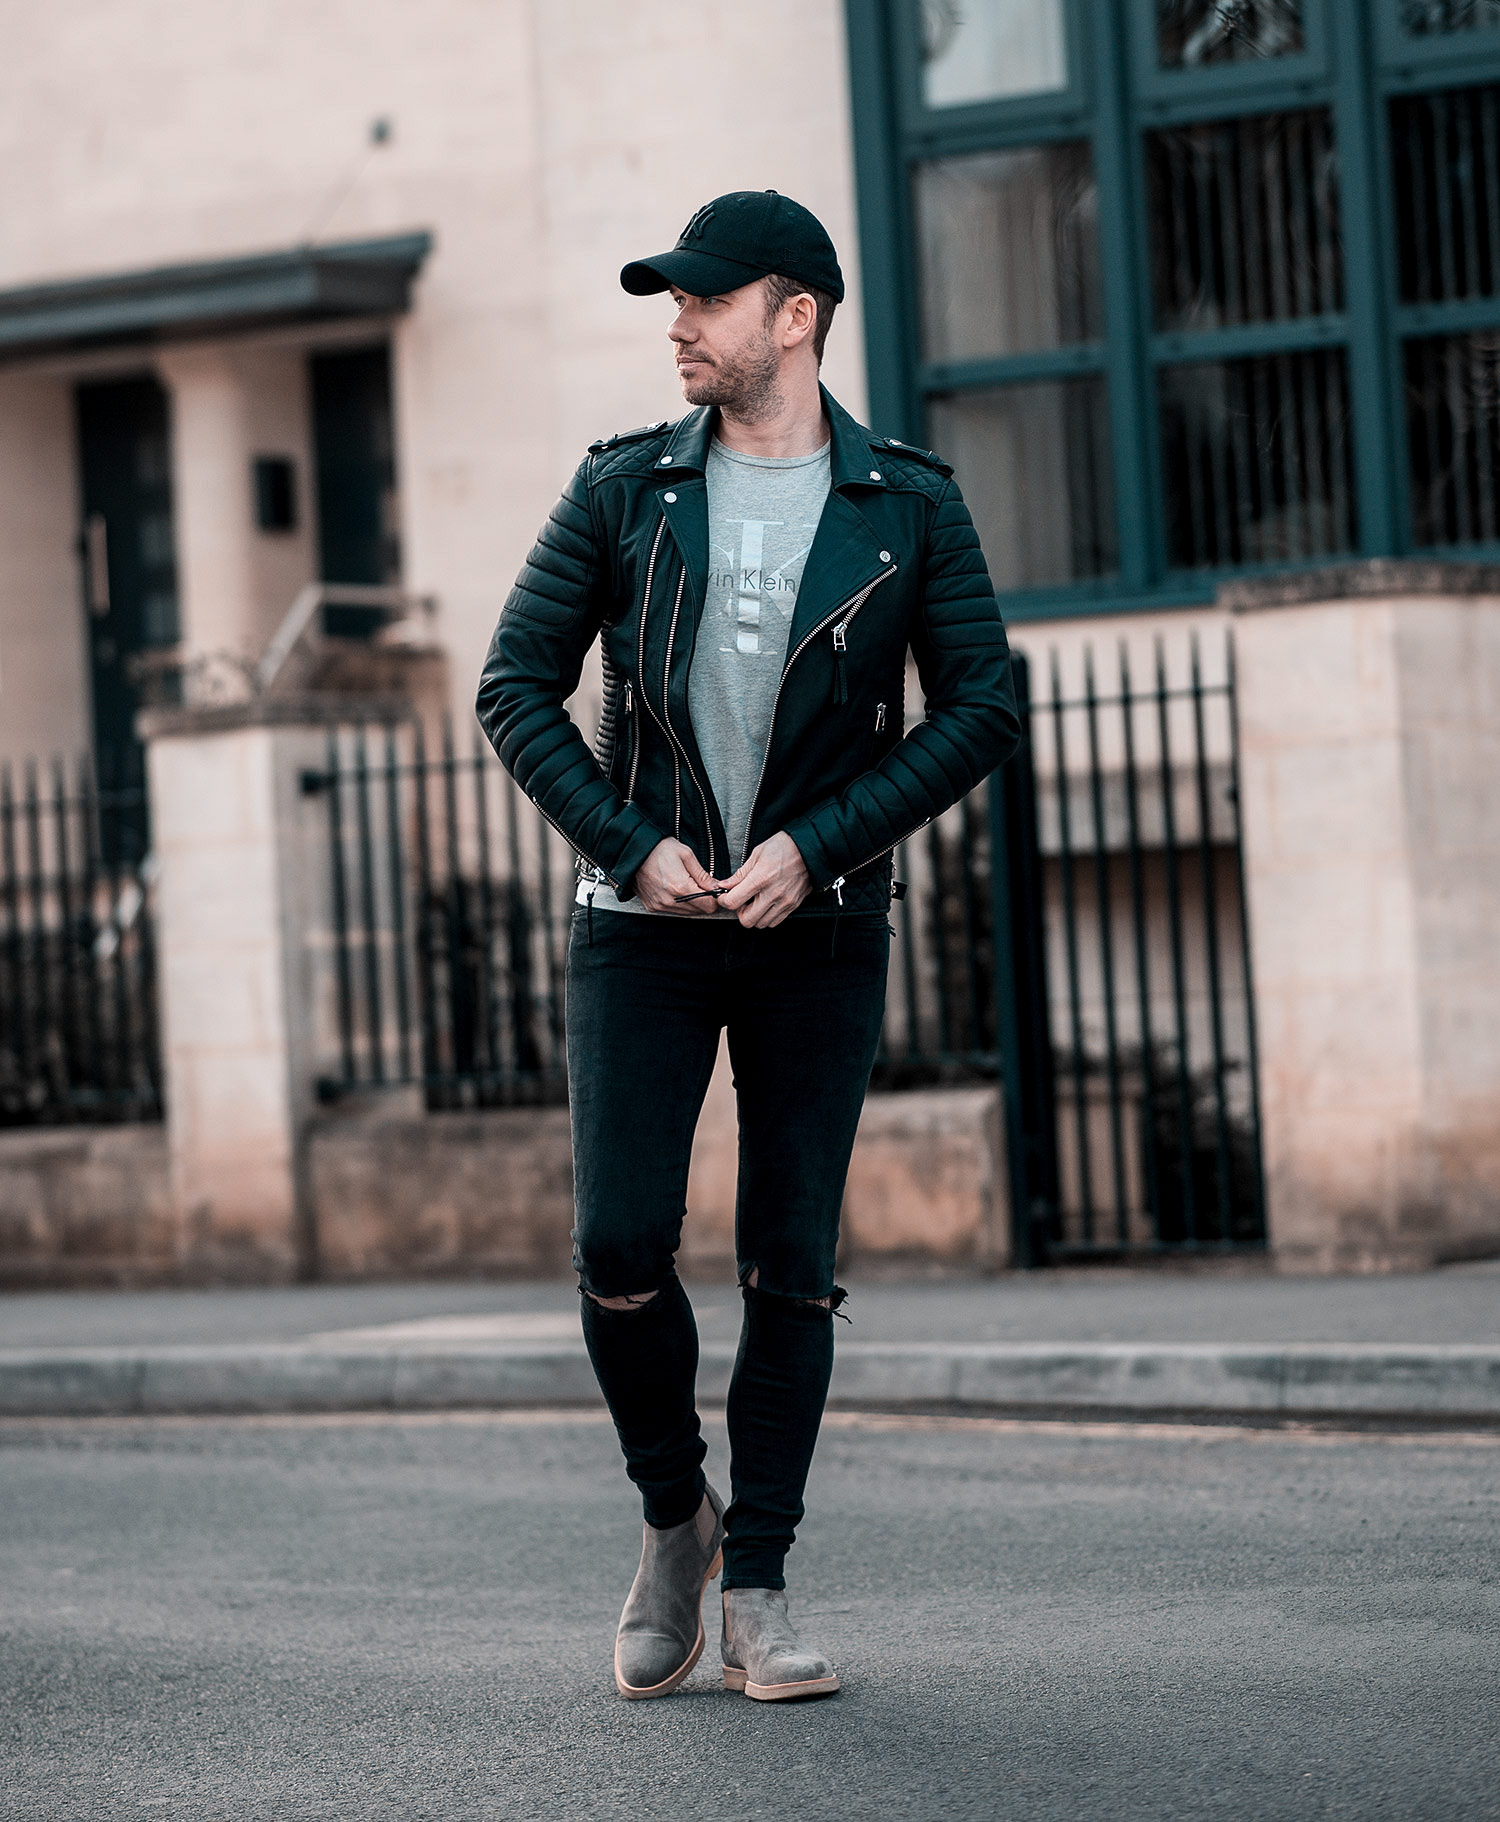 f1fb2ec6 Boda Skins Jacket With Common Projects Chelsea Boots Outfit | Your ...